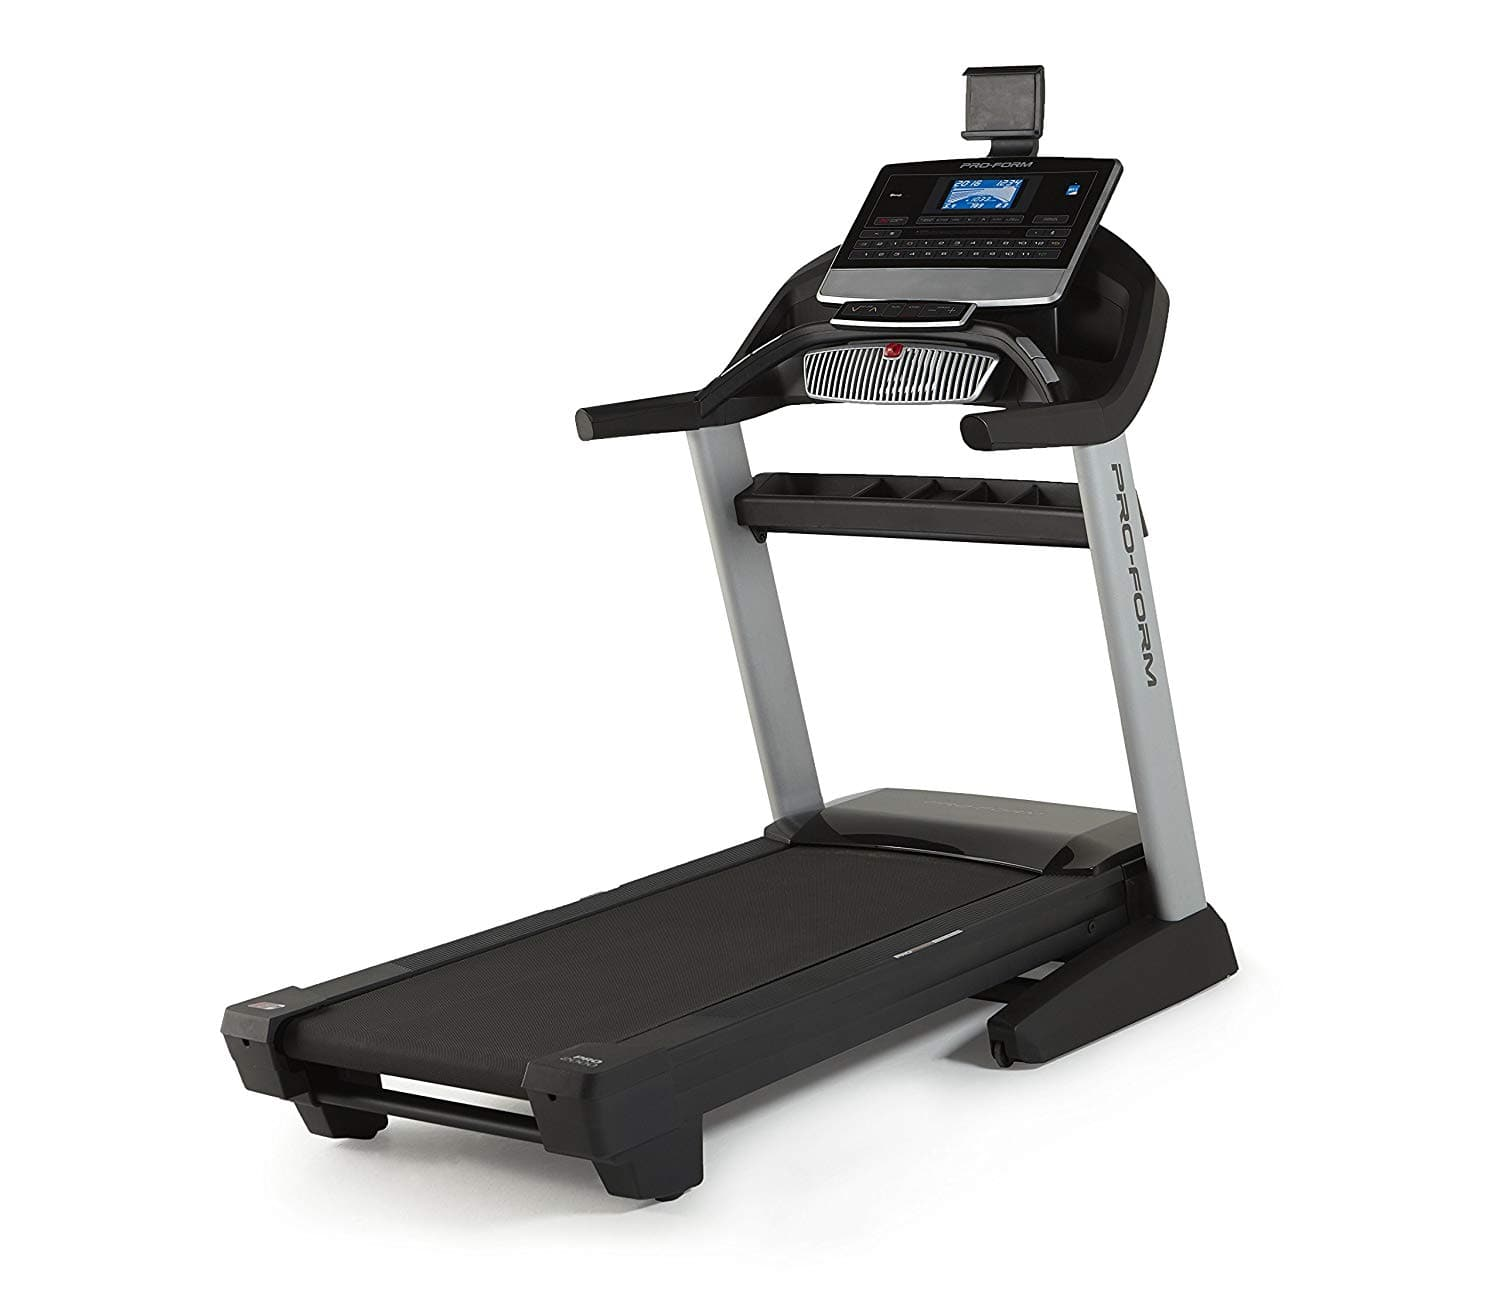 Proform Pro 2000 Treadmill 2016 Model Expert Assembly Page 7